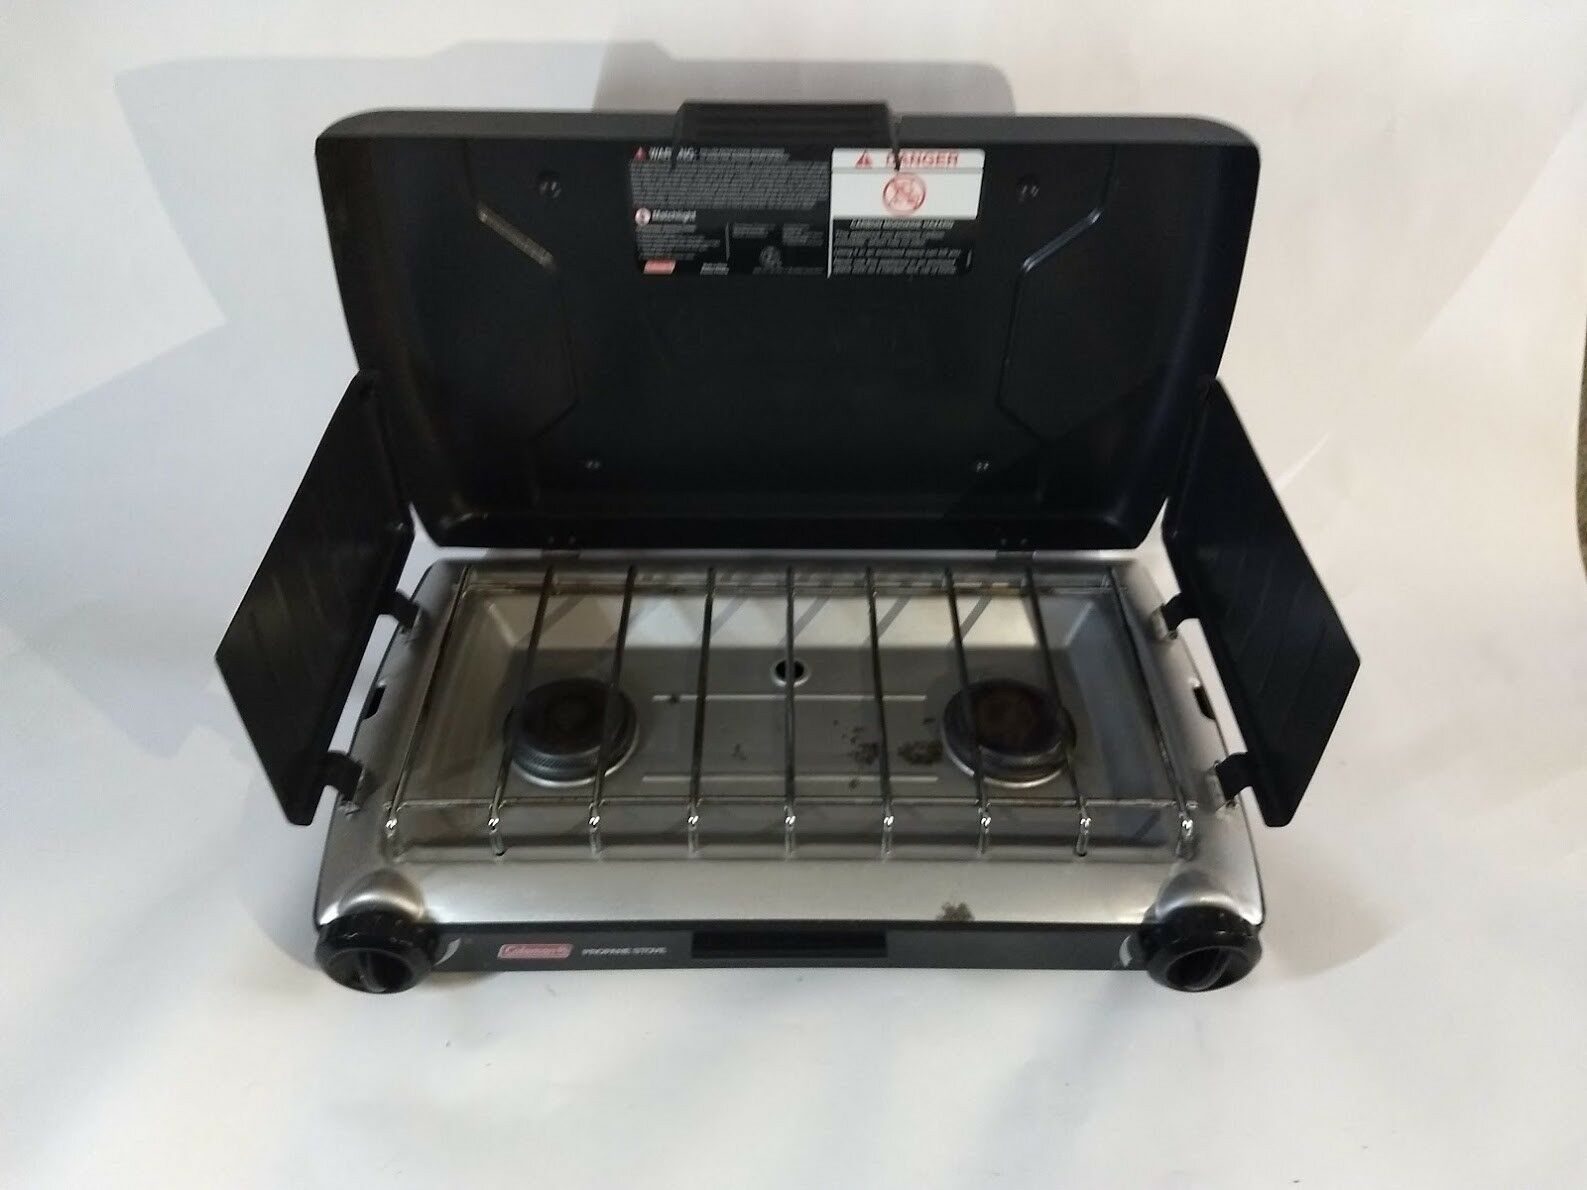 Coleman Portable Propane Camp Stove 2 burner, gently used. 21X13X4   2000020943NP  shop online